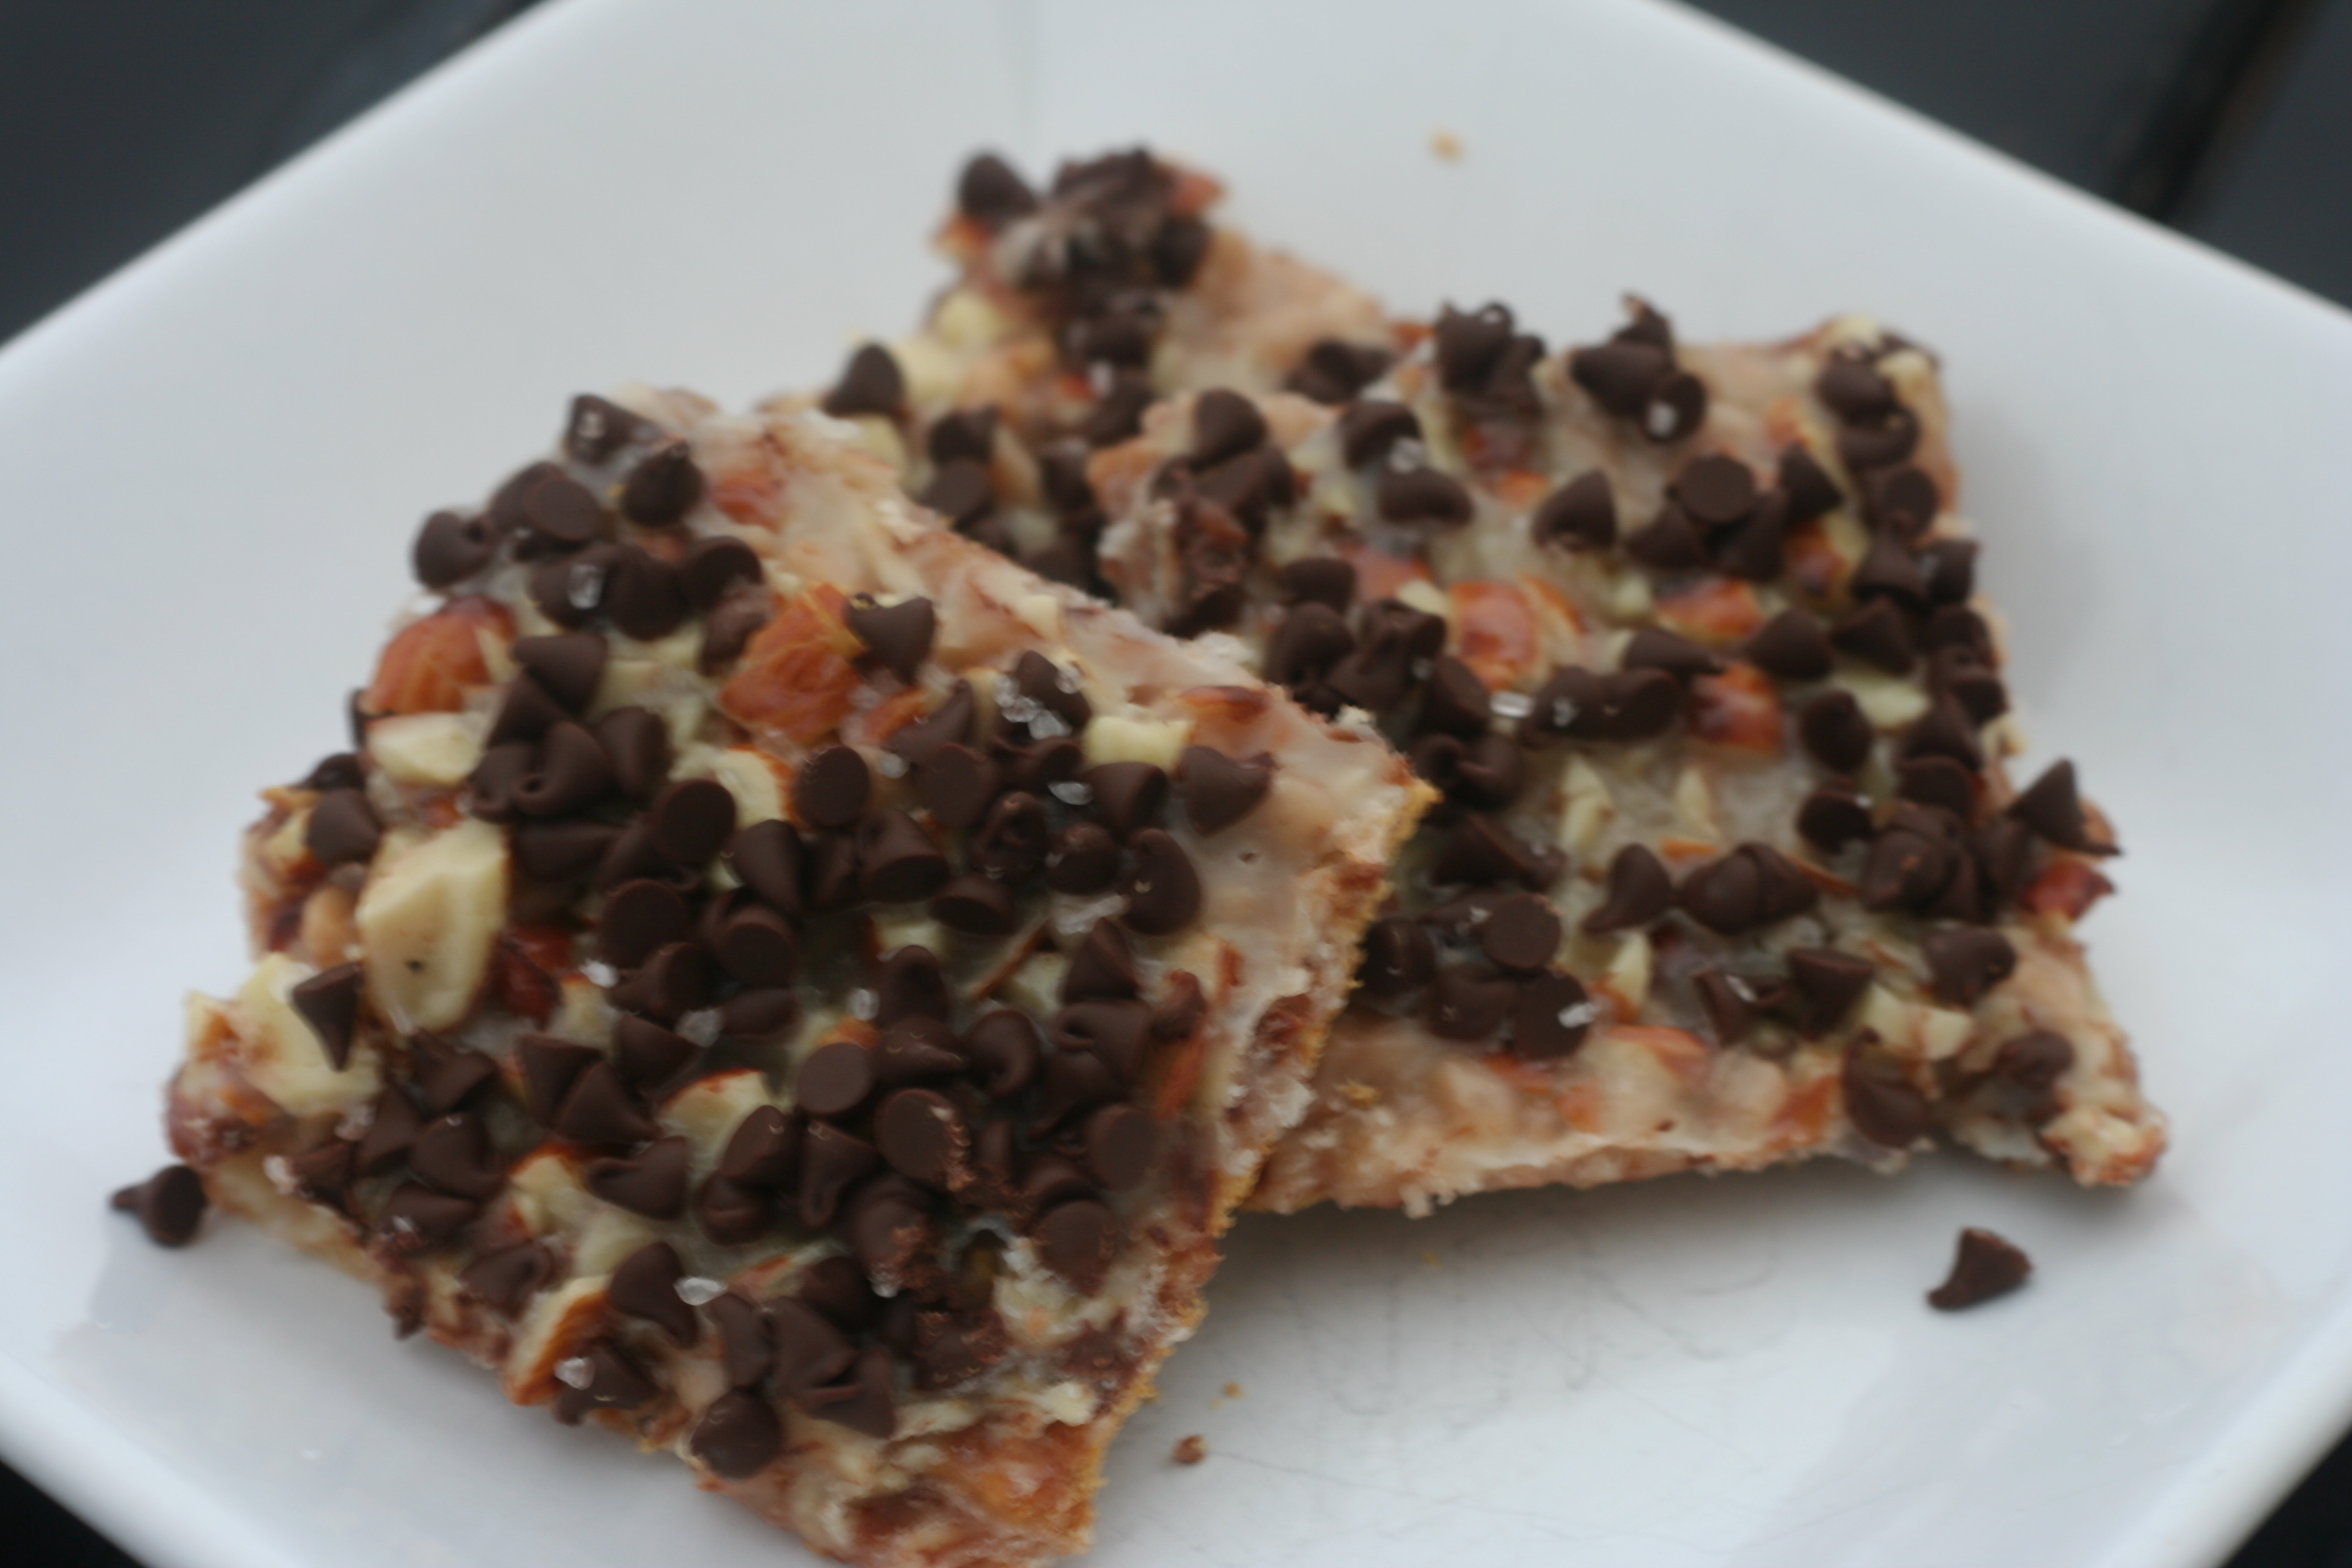 Baker's Delight: Salted Toffee-Chocolate Squares